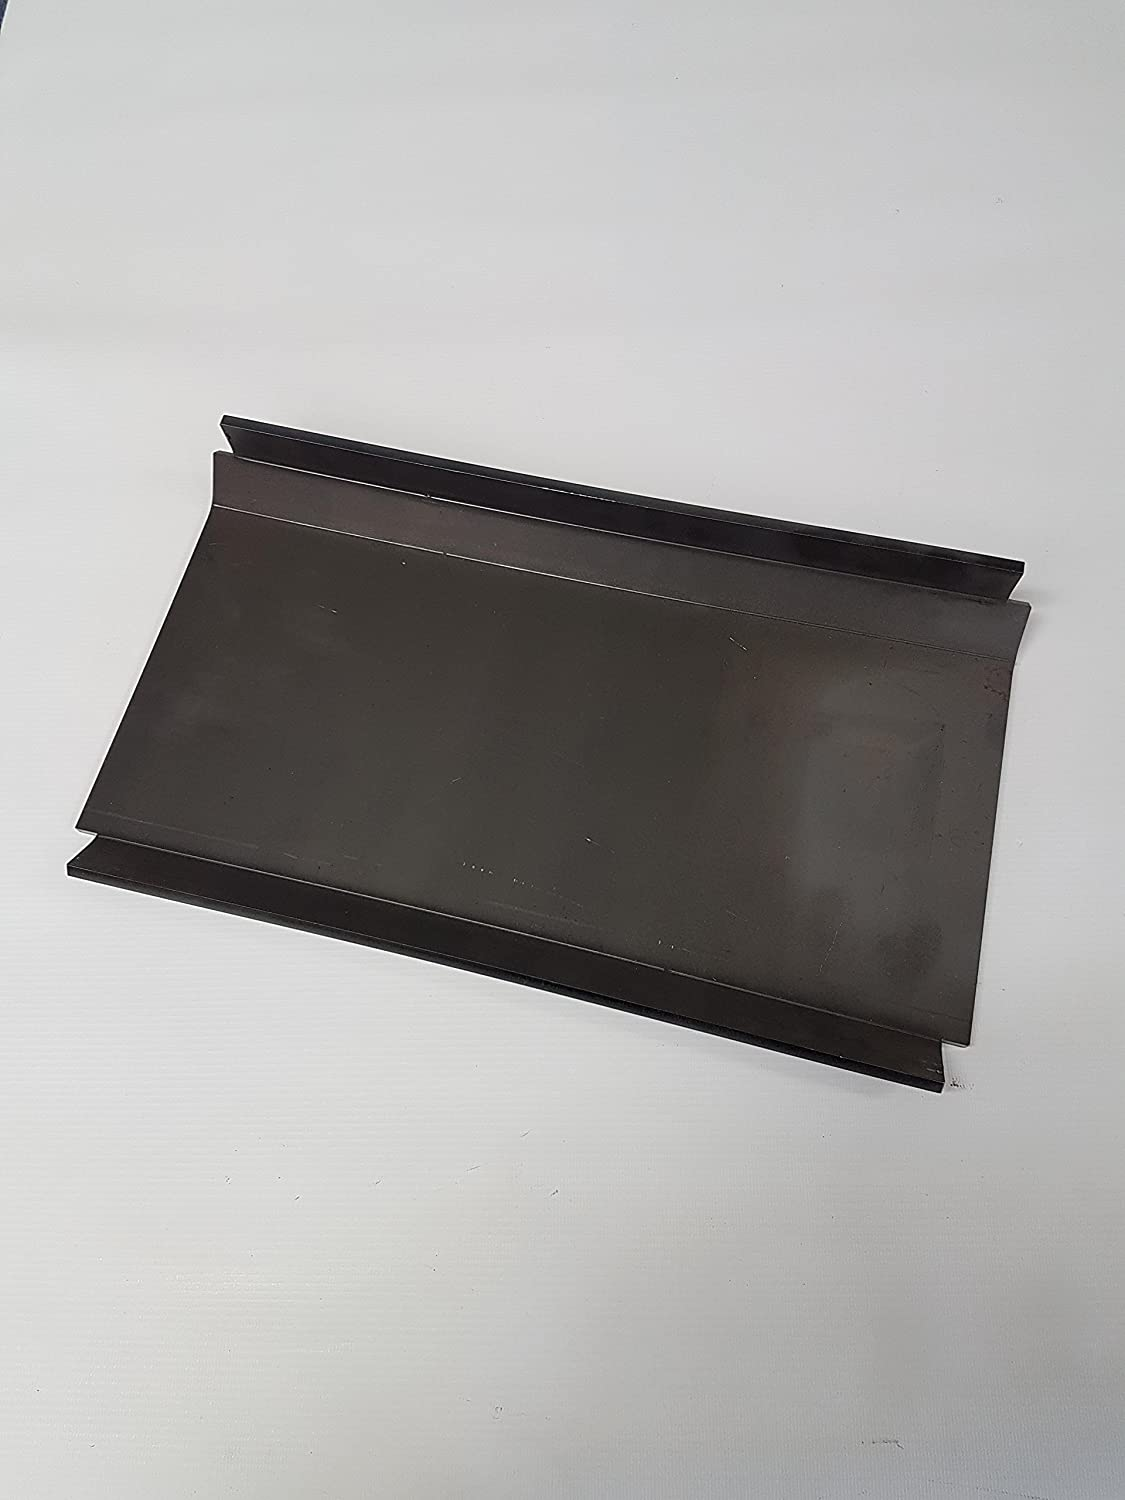 Suitable Replacement Baffle Throat Plate For Merlin Standard Stove